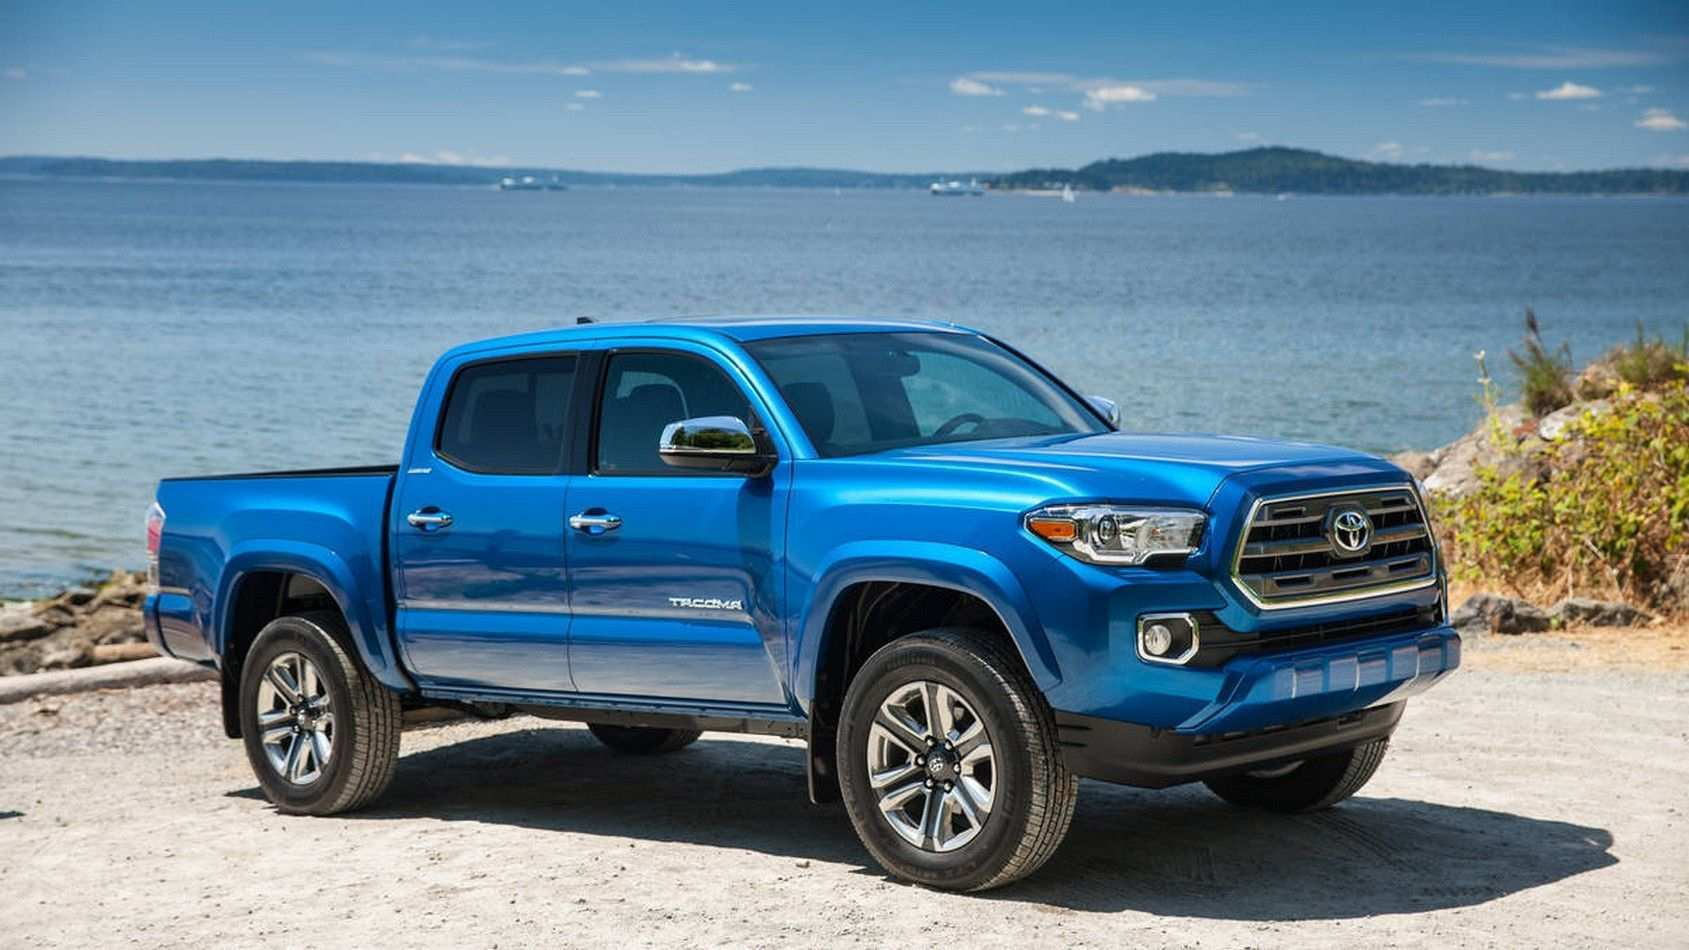 50 The Toyota Tacoma 2020 Exterior Date Configurations for Toyota Tacoma 2020 Exterior Date